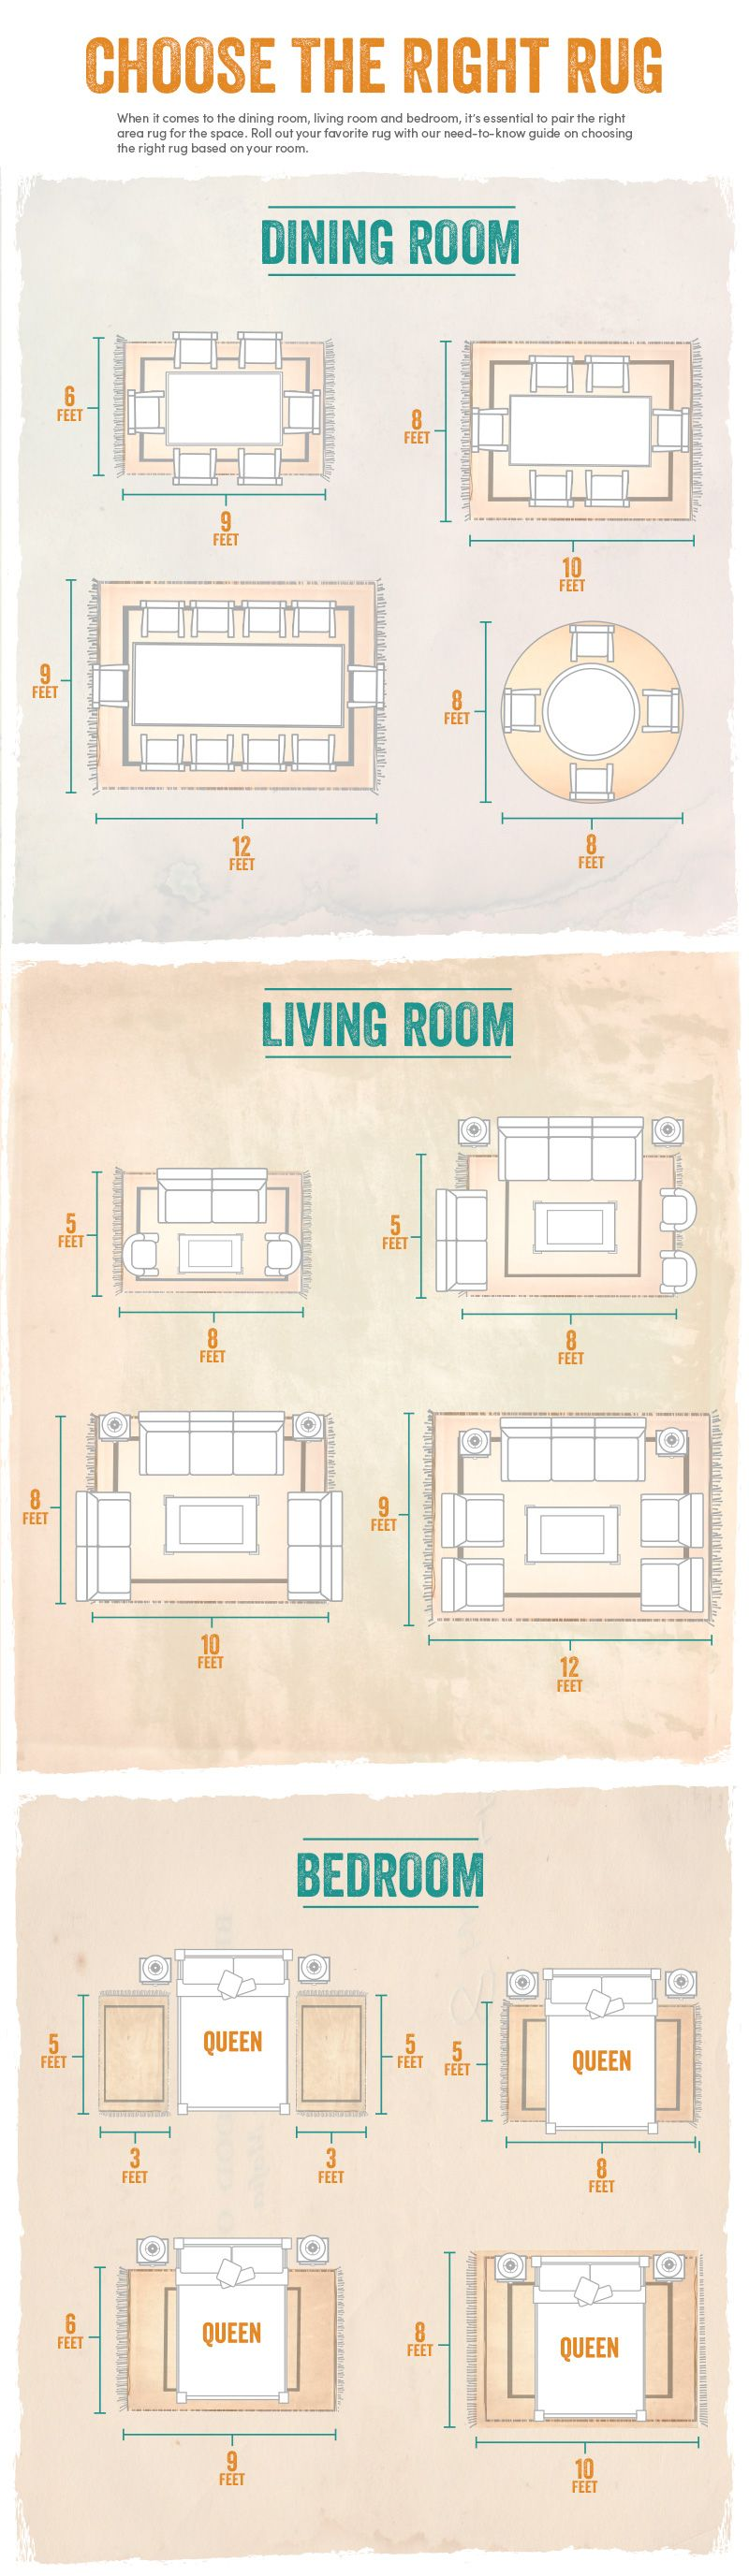 Living Room Area Rug Placement Choose The Right Rug For Your Space For The To Find Out And Look At